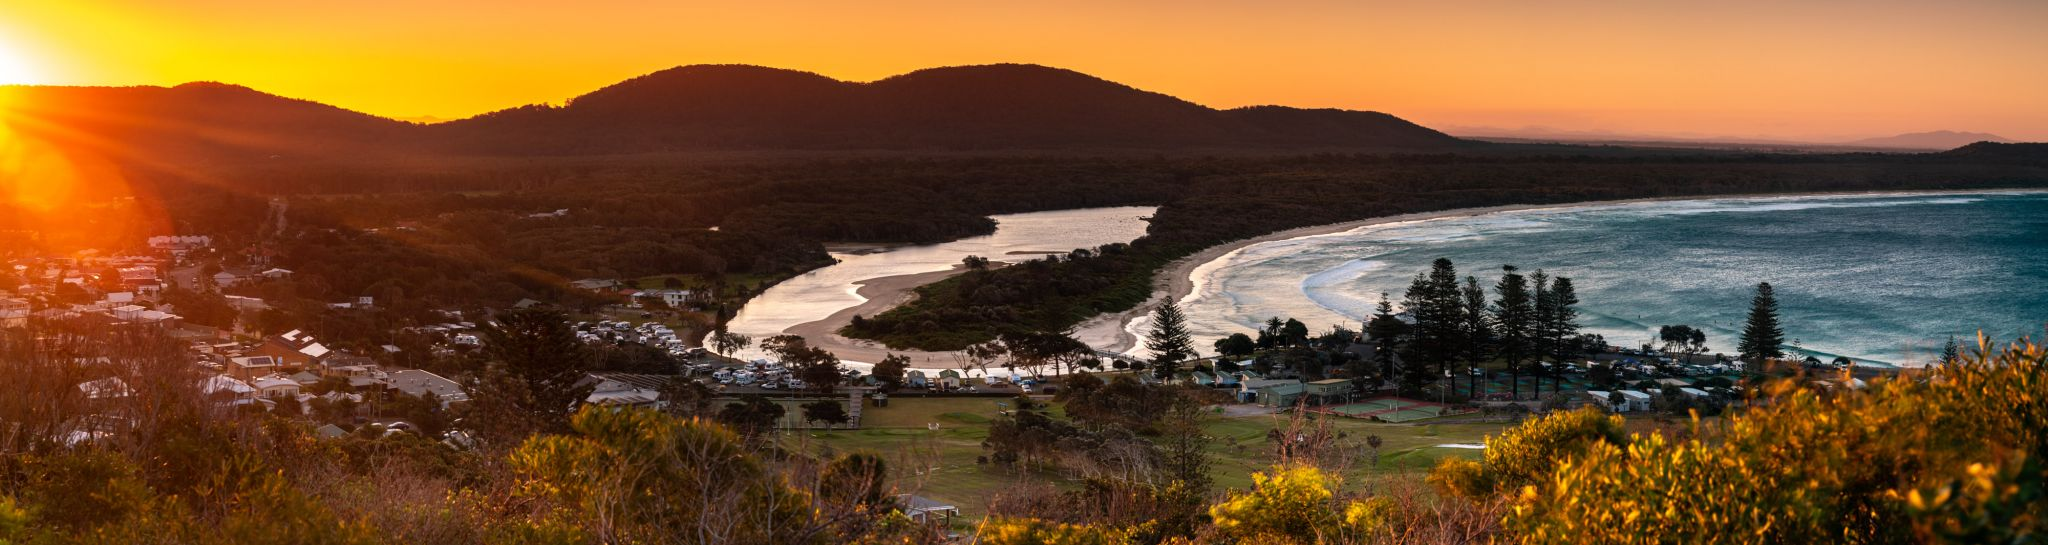 Crescent Head Pano sunset New South Wales, Australia